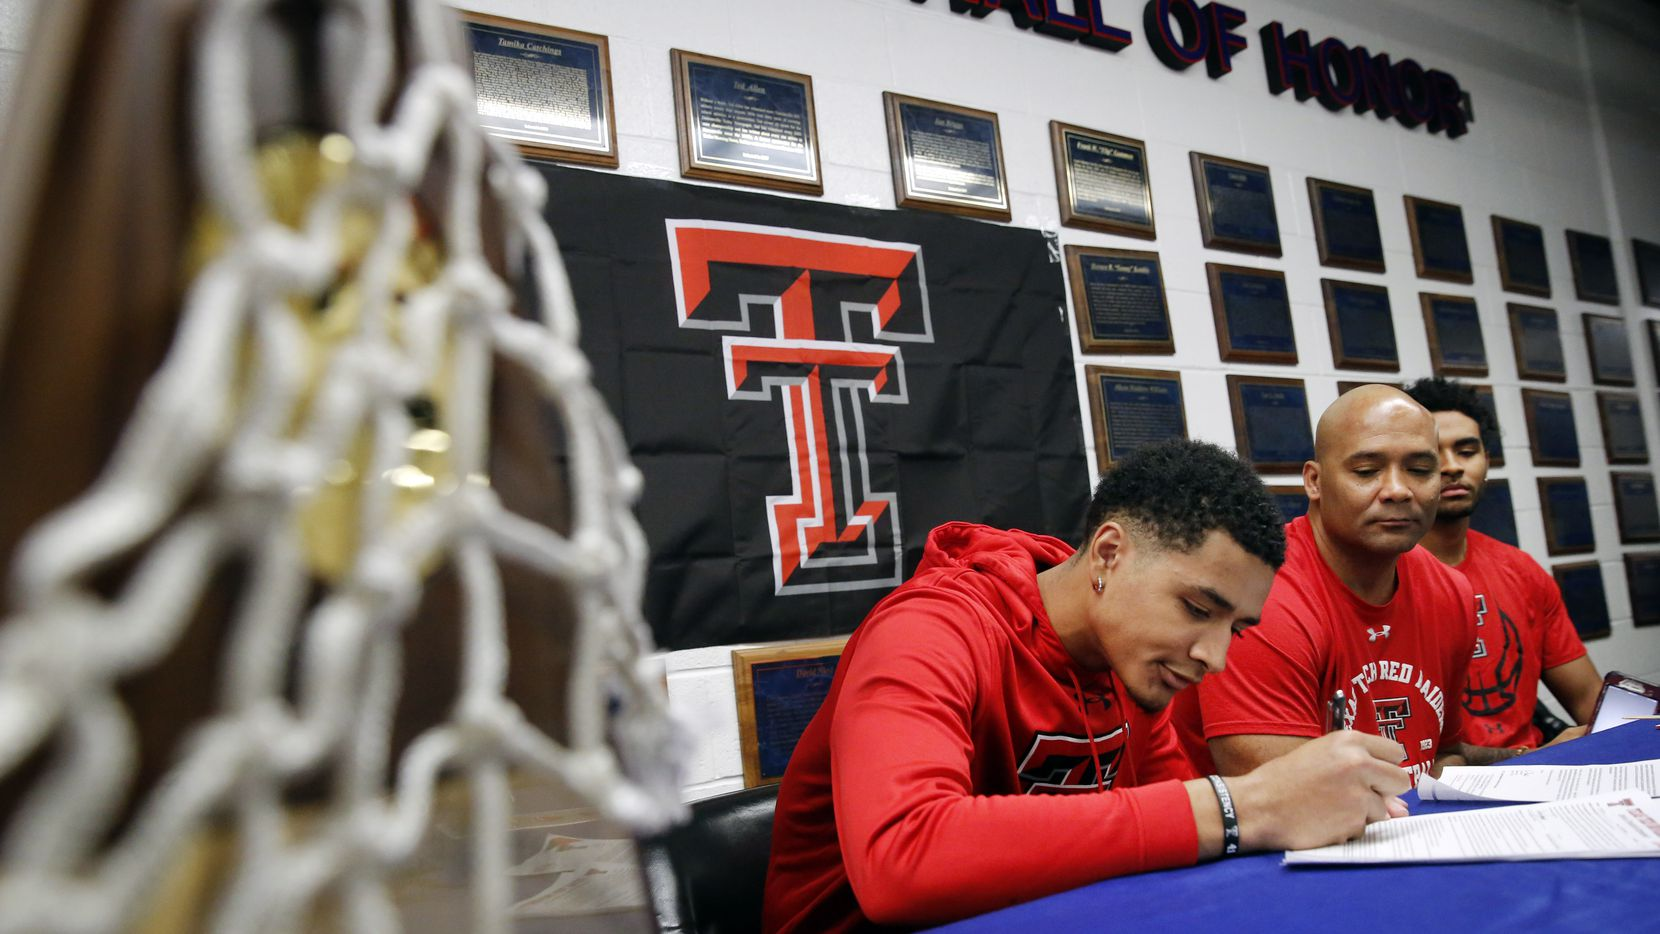 Alongside his father and head coach David Peavy (second from right), Duncanville boys basketball player Micah Peavy signed his national letter of intent to play for Texas Tech University, Wednesday, November 13, 2019. His older brother DJ Peavy (right) joined them at the table. (Tom Fox/The Dallas Morning News)